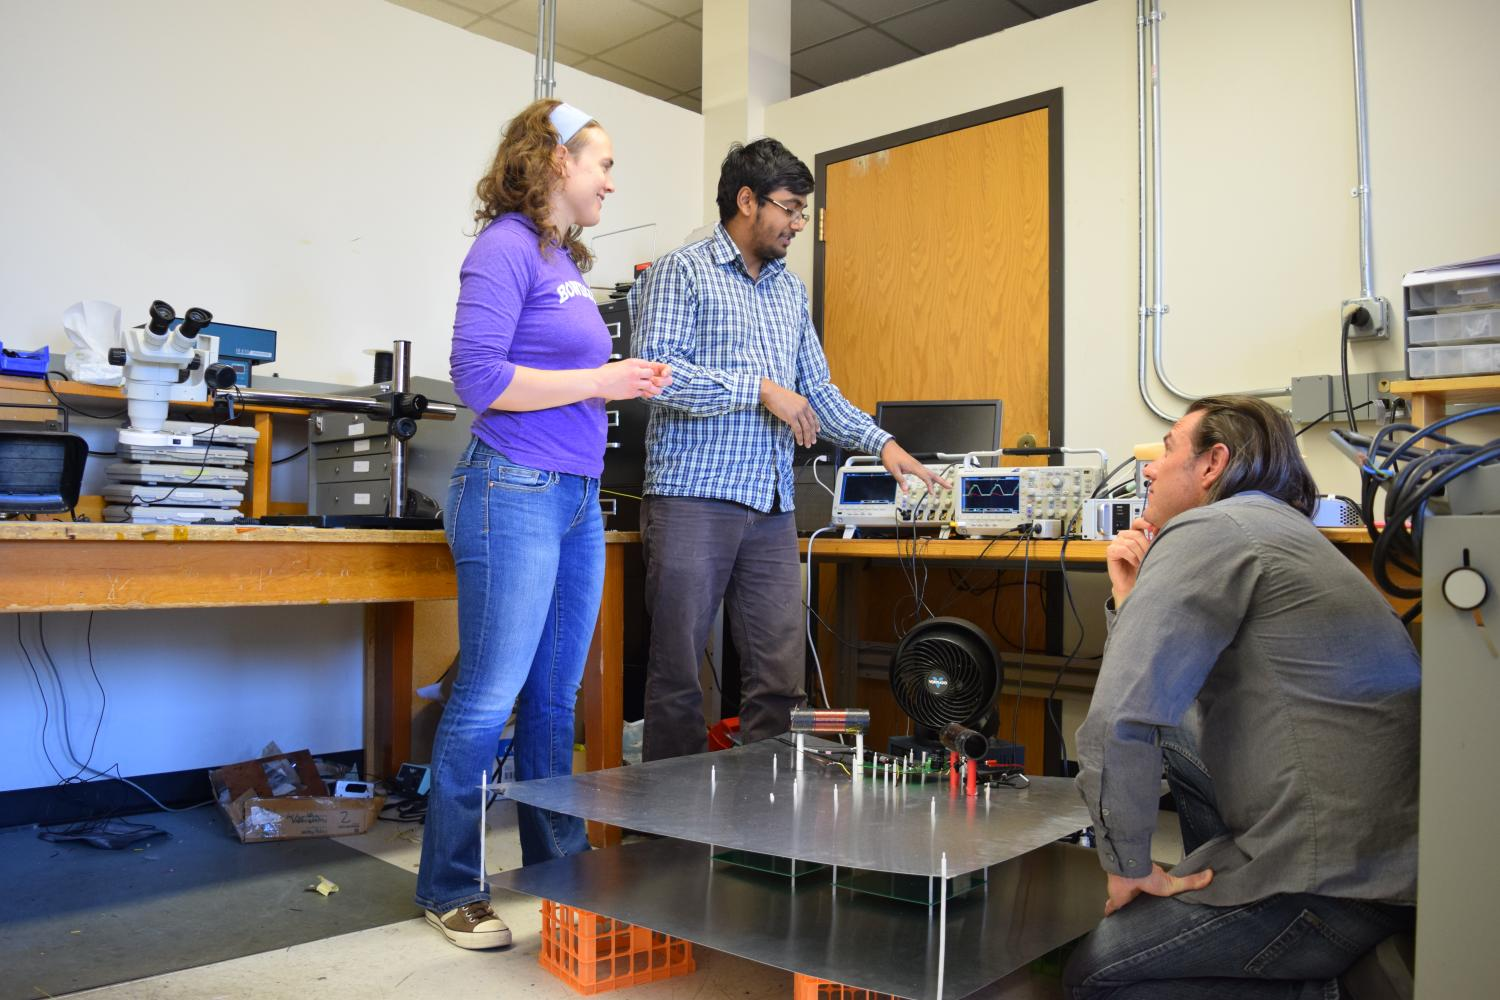 Three graduate students discuss a project in the CoPEC lab